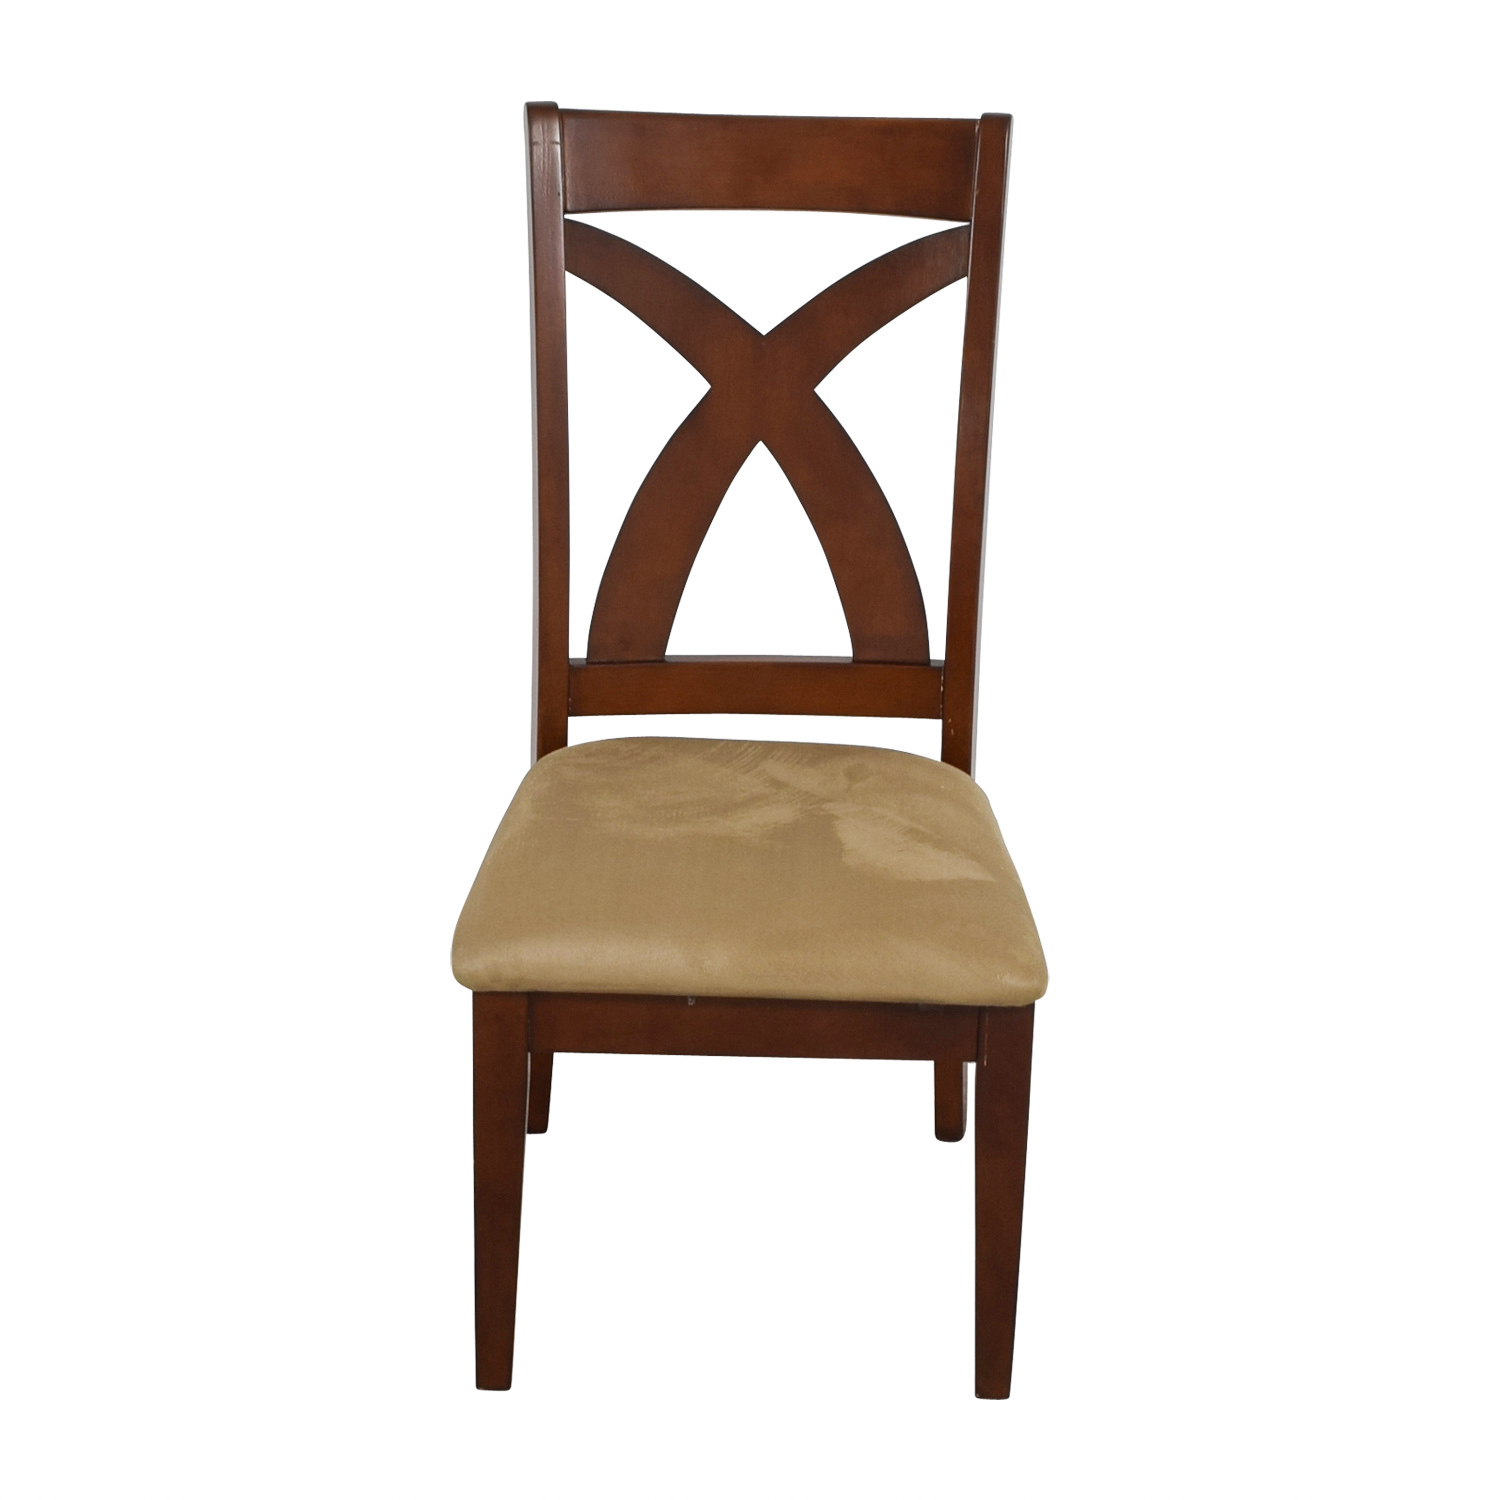 Cross Back Wood Chair with Padded Seat / Dining Chairs